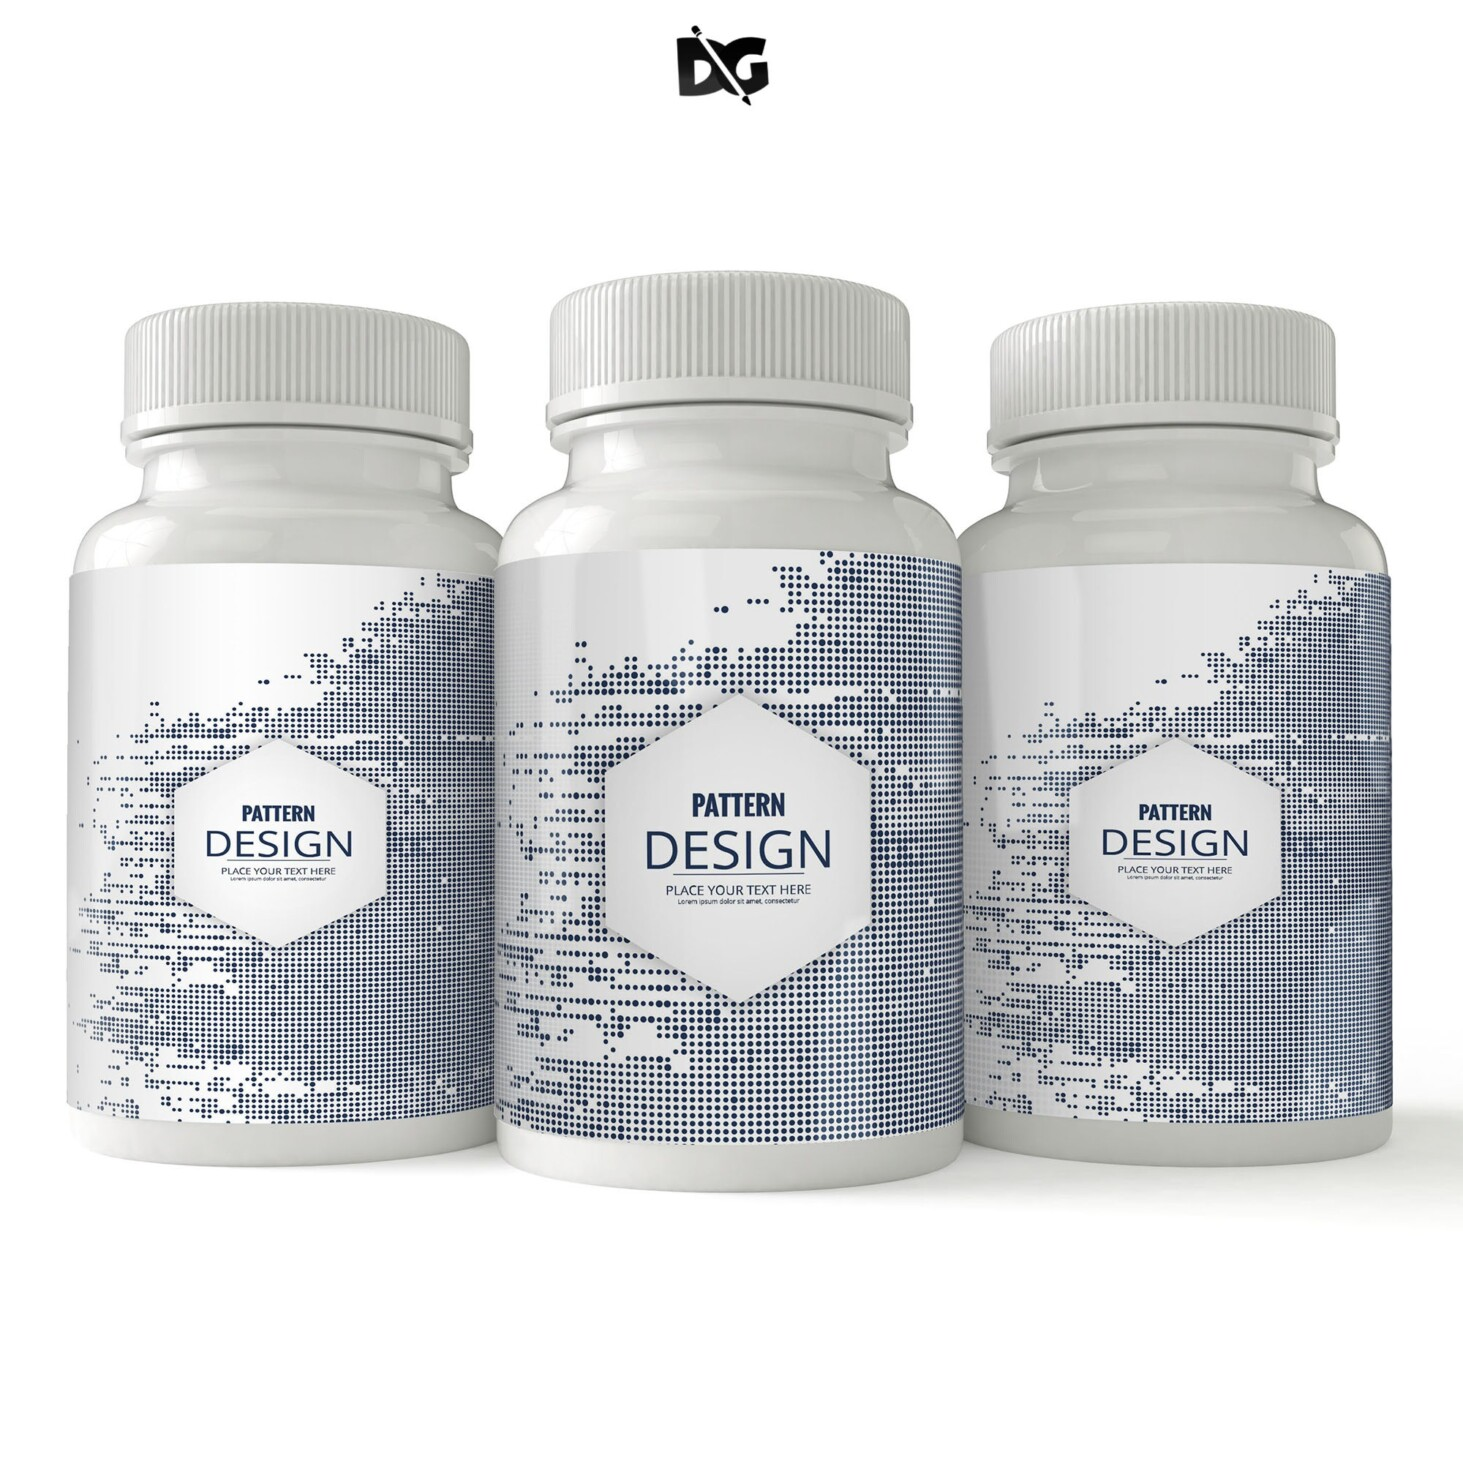 Product Bottle Label Mockup